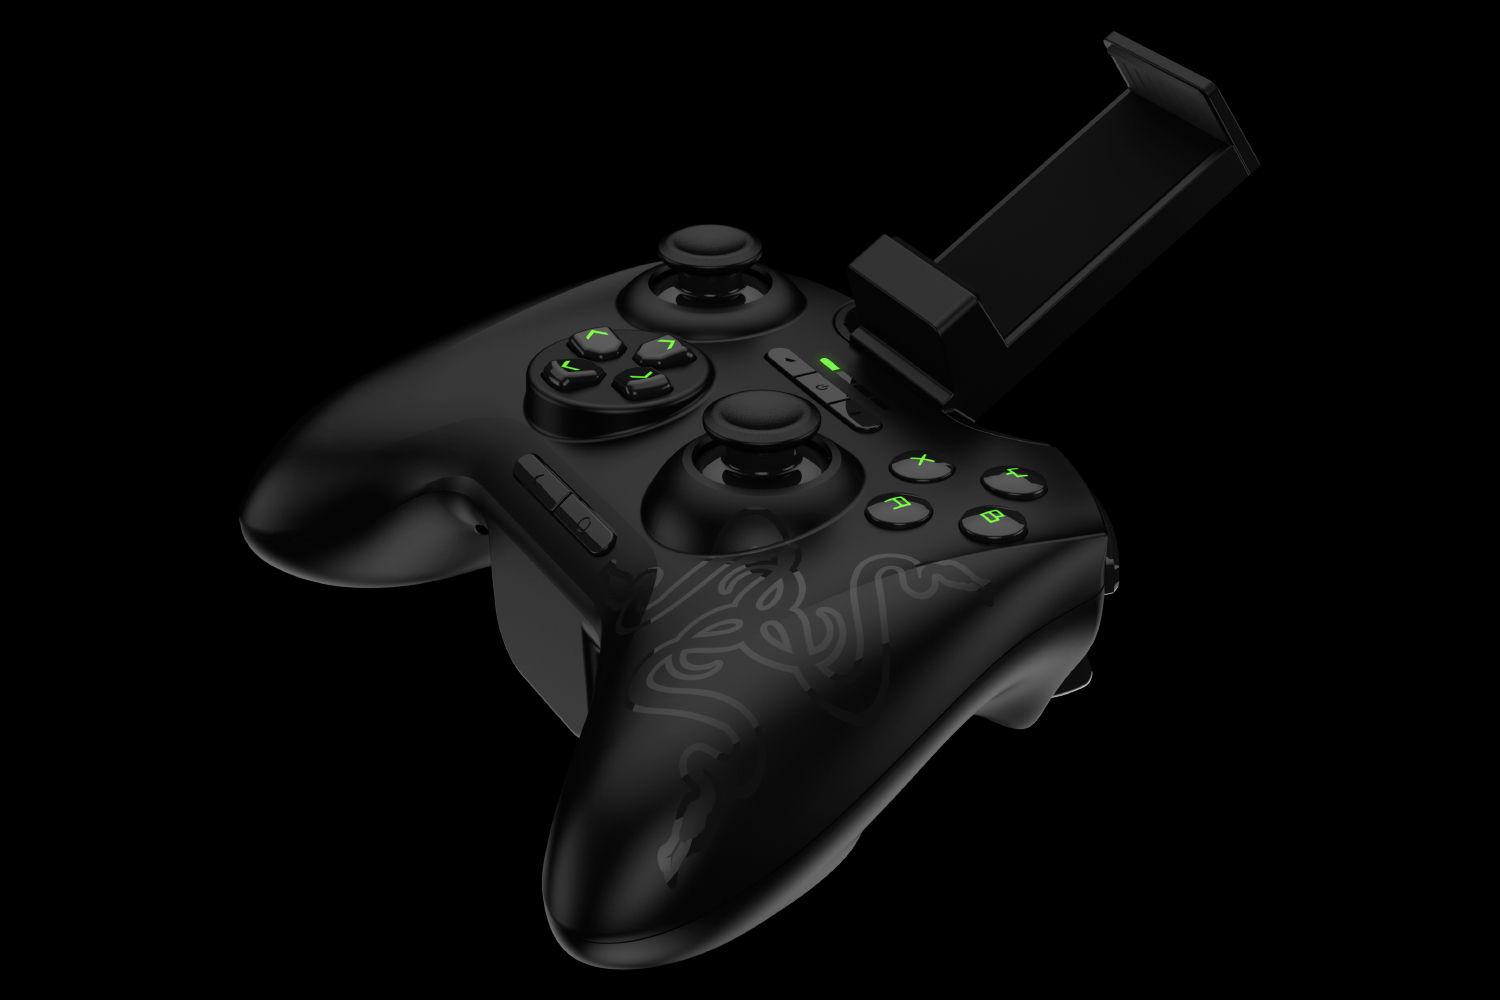 The clip comes with Razer Serval and attaches snugly to the controller.